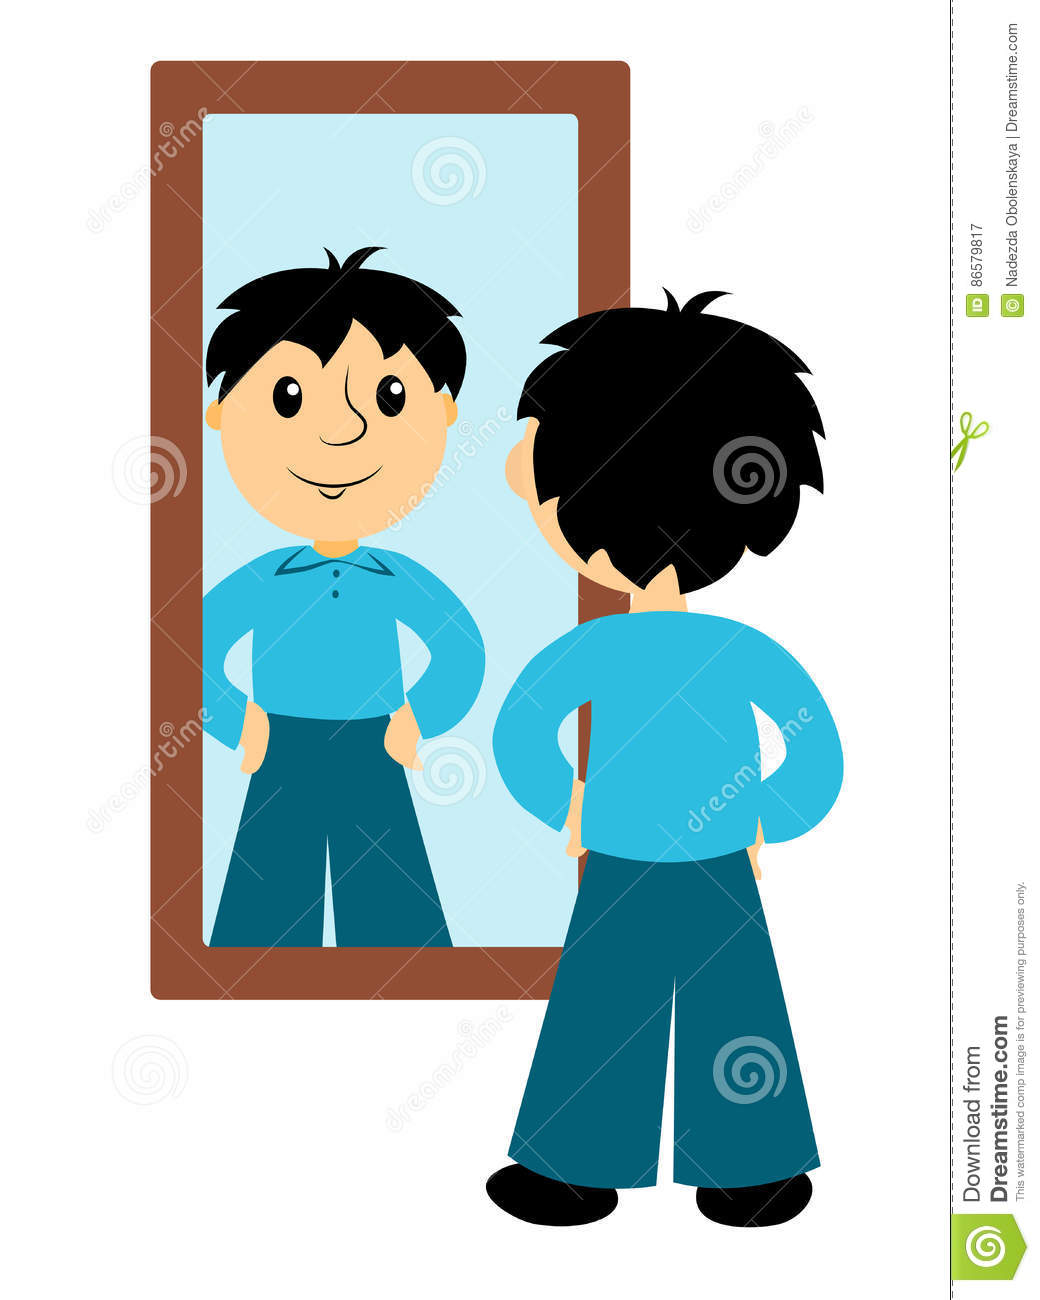 The boy looks in a mirror stock vector. Illustration of clipart.